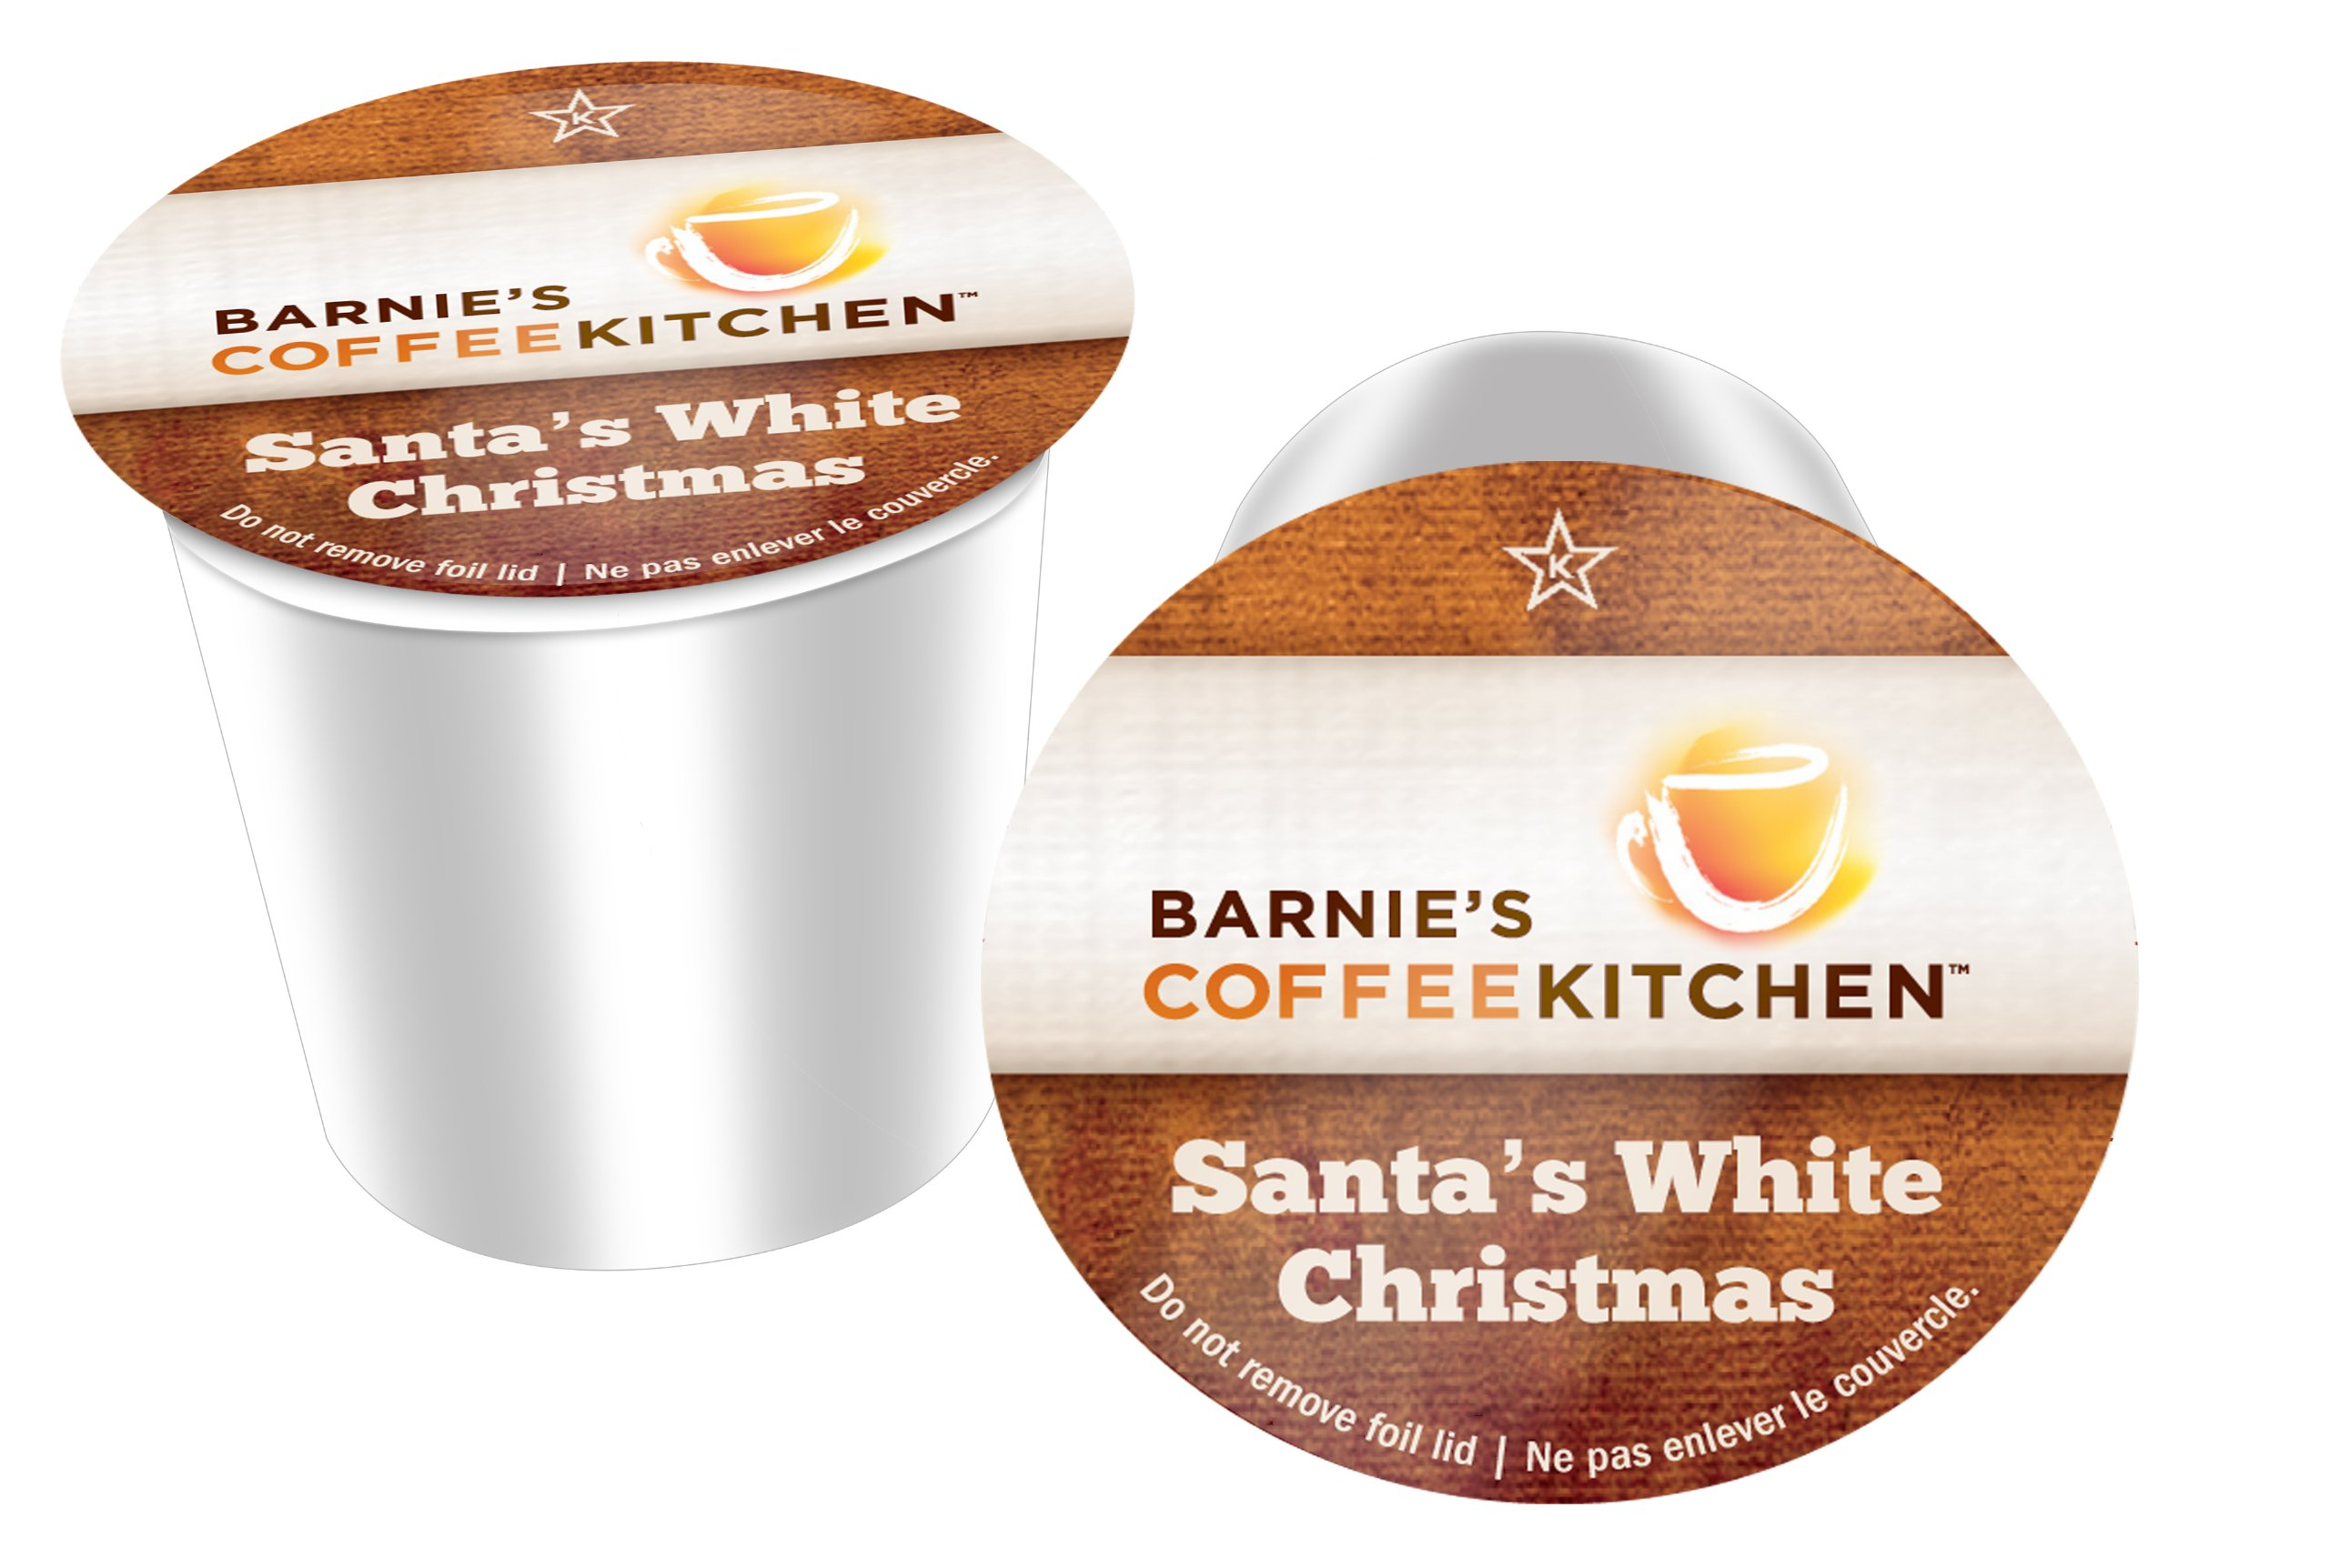 Barnie's Coffee Kitchen, Santa's White Chistmas, K-cups for Keurig Brewers (96 Ct.)